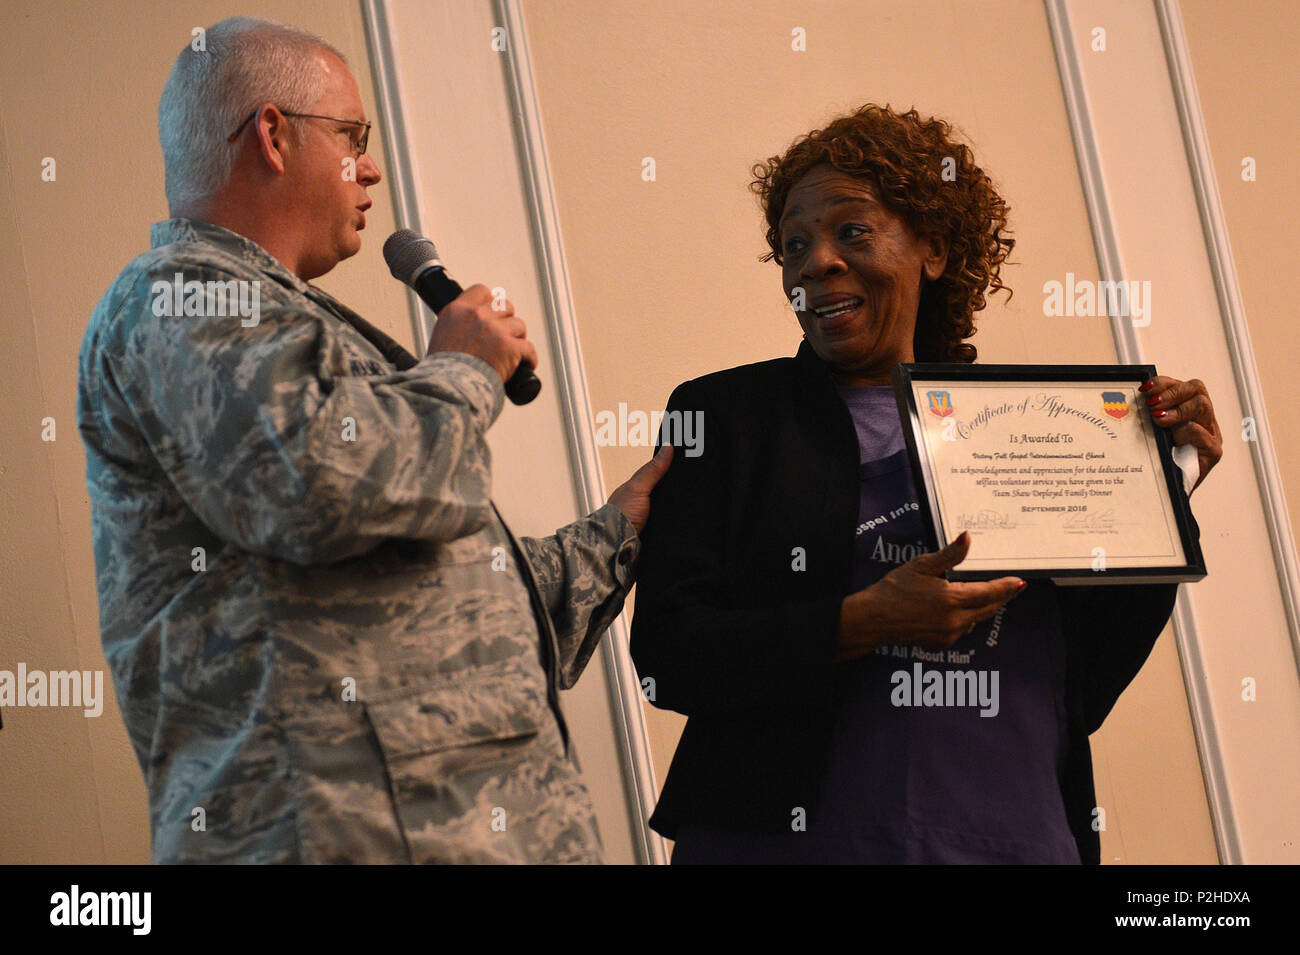 U.S. Air Force Chaplain (Maj.) Richard Holmes, 20th Fighter Wing chaplain, presents Joann Murrill, Victory Gospel Interdenomination Church pastor, with a certificate of appreciation during a deployed family dinner at the Carolina Skies Club and Conference Center at Shaw Air Force, S.C., Sept. 26, 2016. Murrill was recognized for providing the evening meal for the event. (U.S. Air Force photo by Airman 1st Class Christopher Maldonado) - Stock Image